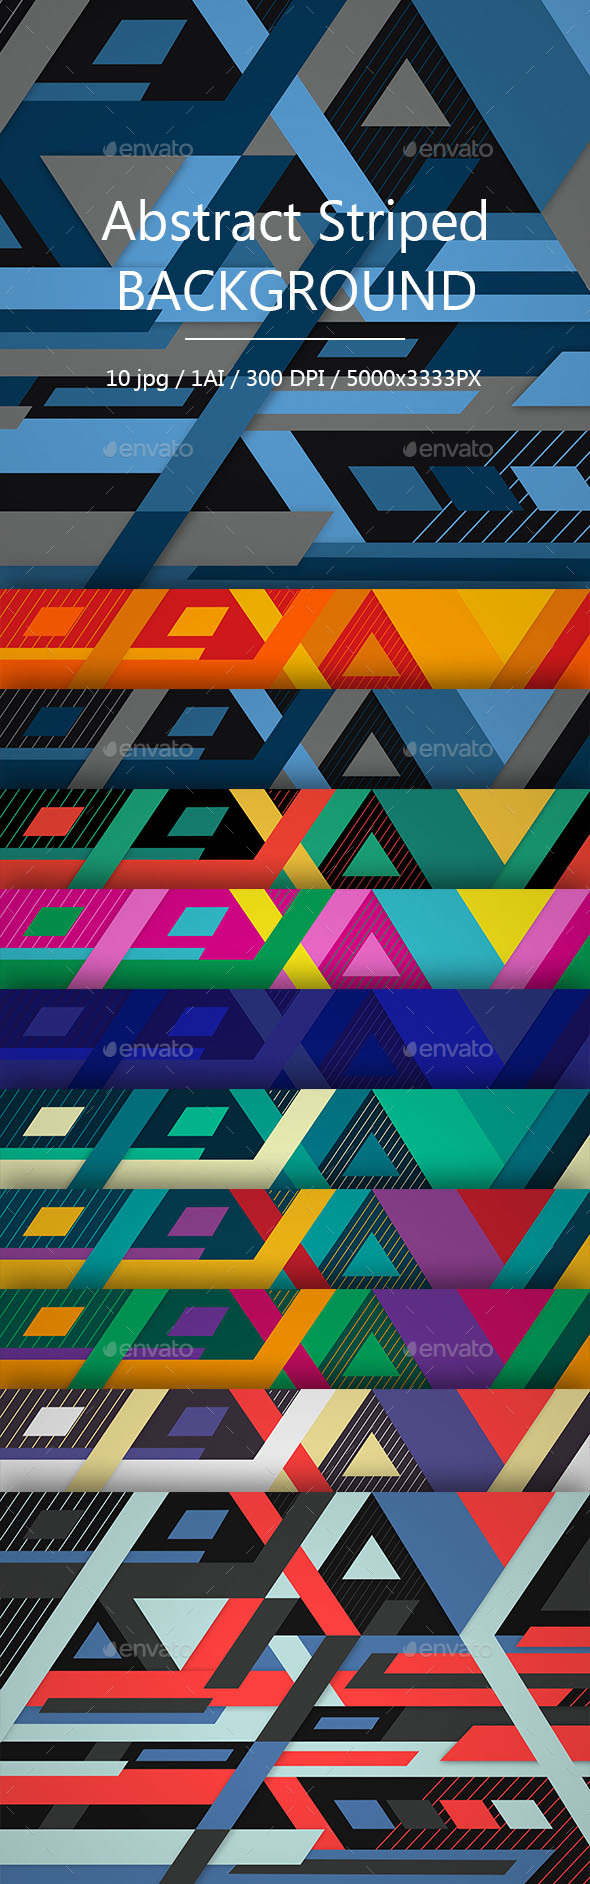 Abstract Striped Background - Backgrounds Graphics